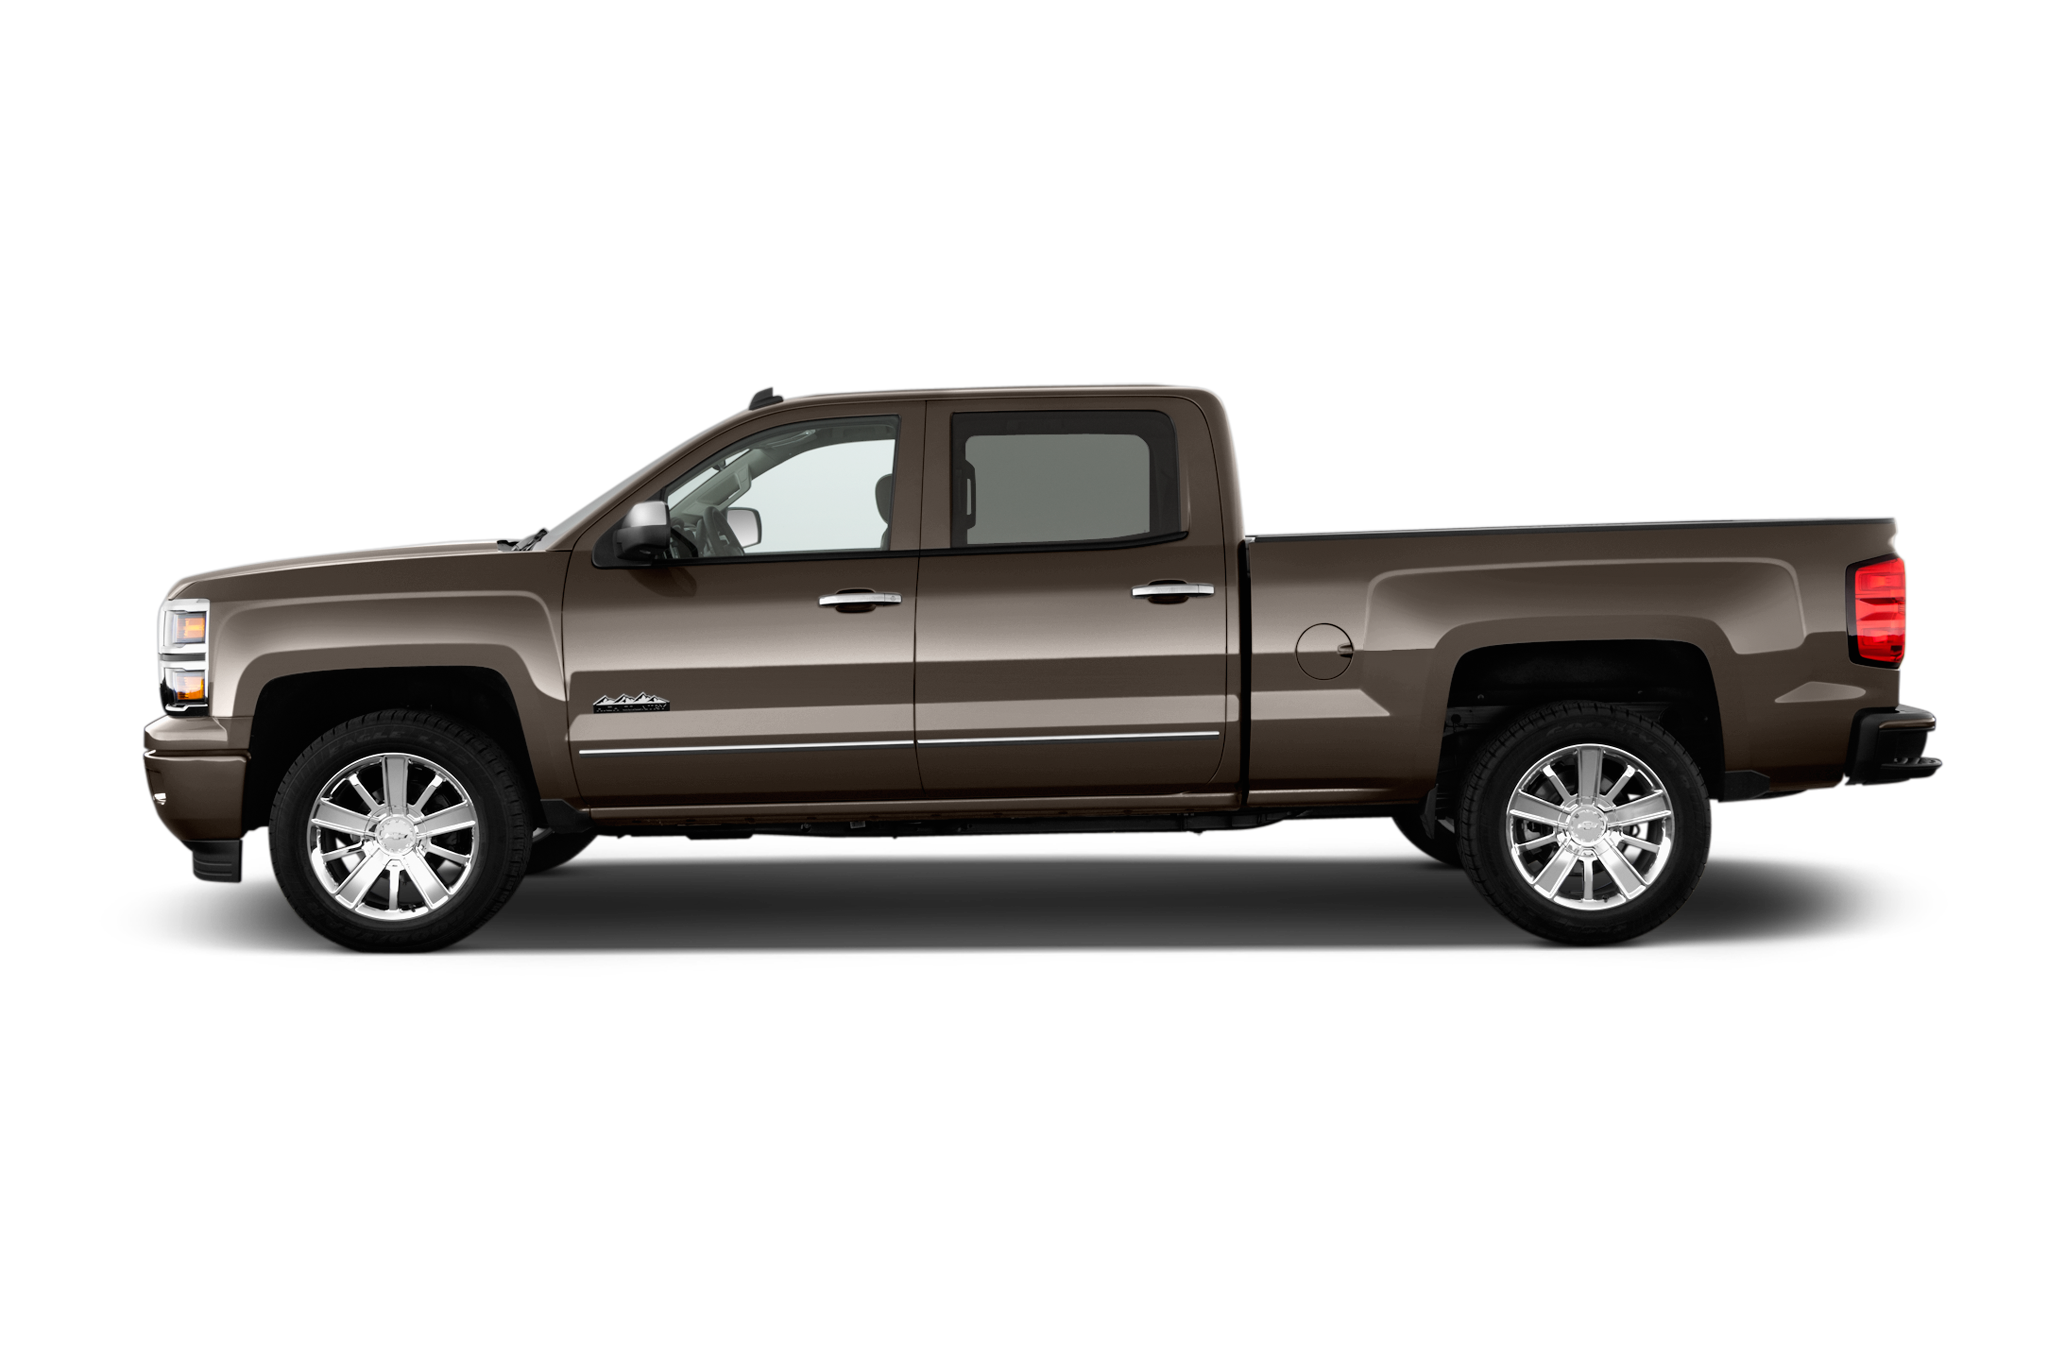 2016 Chevrolet Silverado Gmc Sierra Add Eassist Hybrid Automobile 1937 Chevy Truck Wiring Diagram 34 125